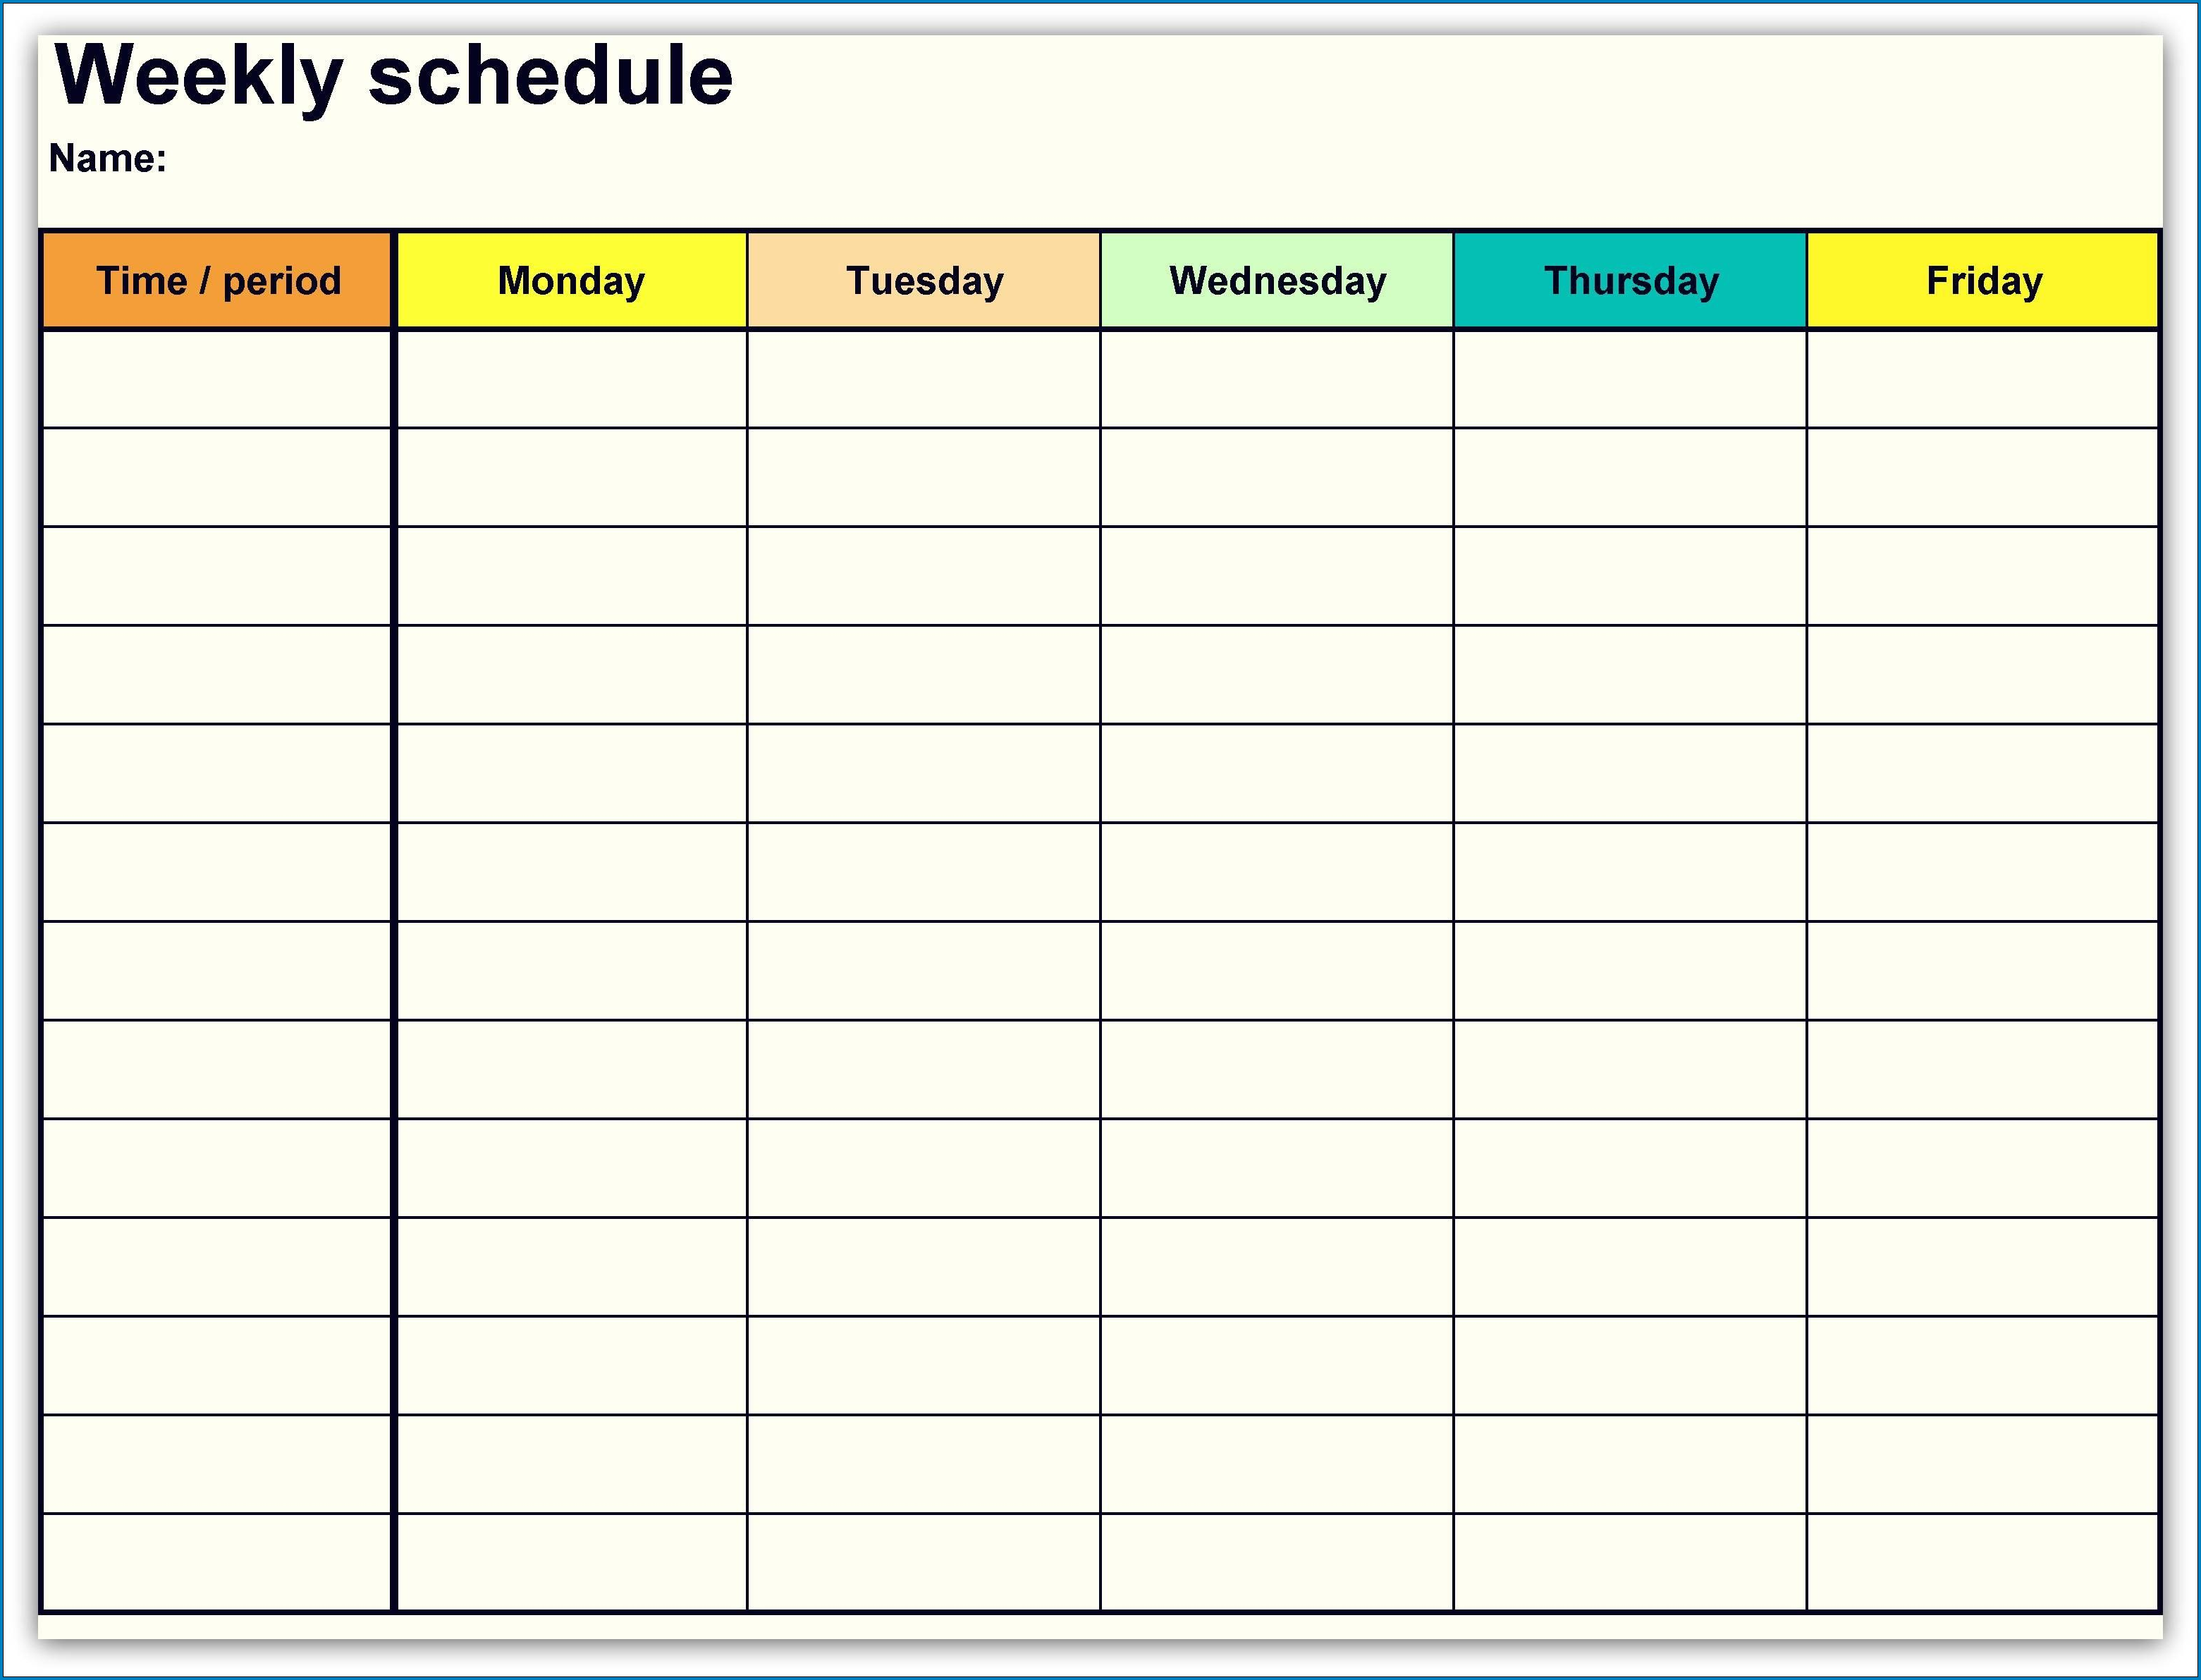 Weekly Scheduling Calendar Template from www.templateral.com